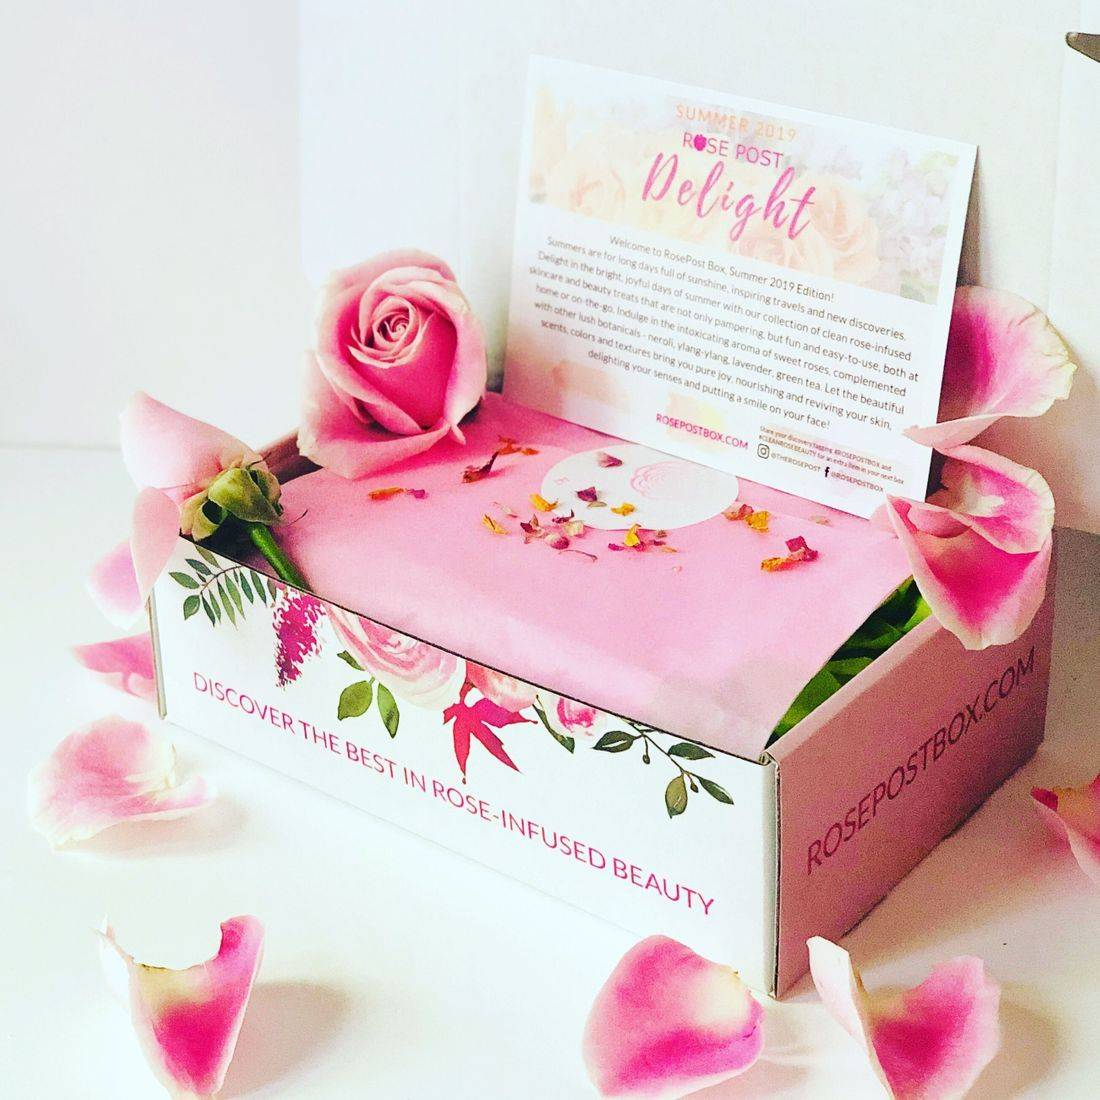 RosePost Box, RosePost Subscription Box, Rose Beauty Box, Rose-infused beauty